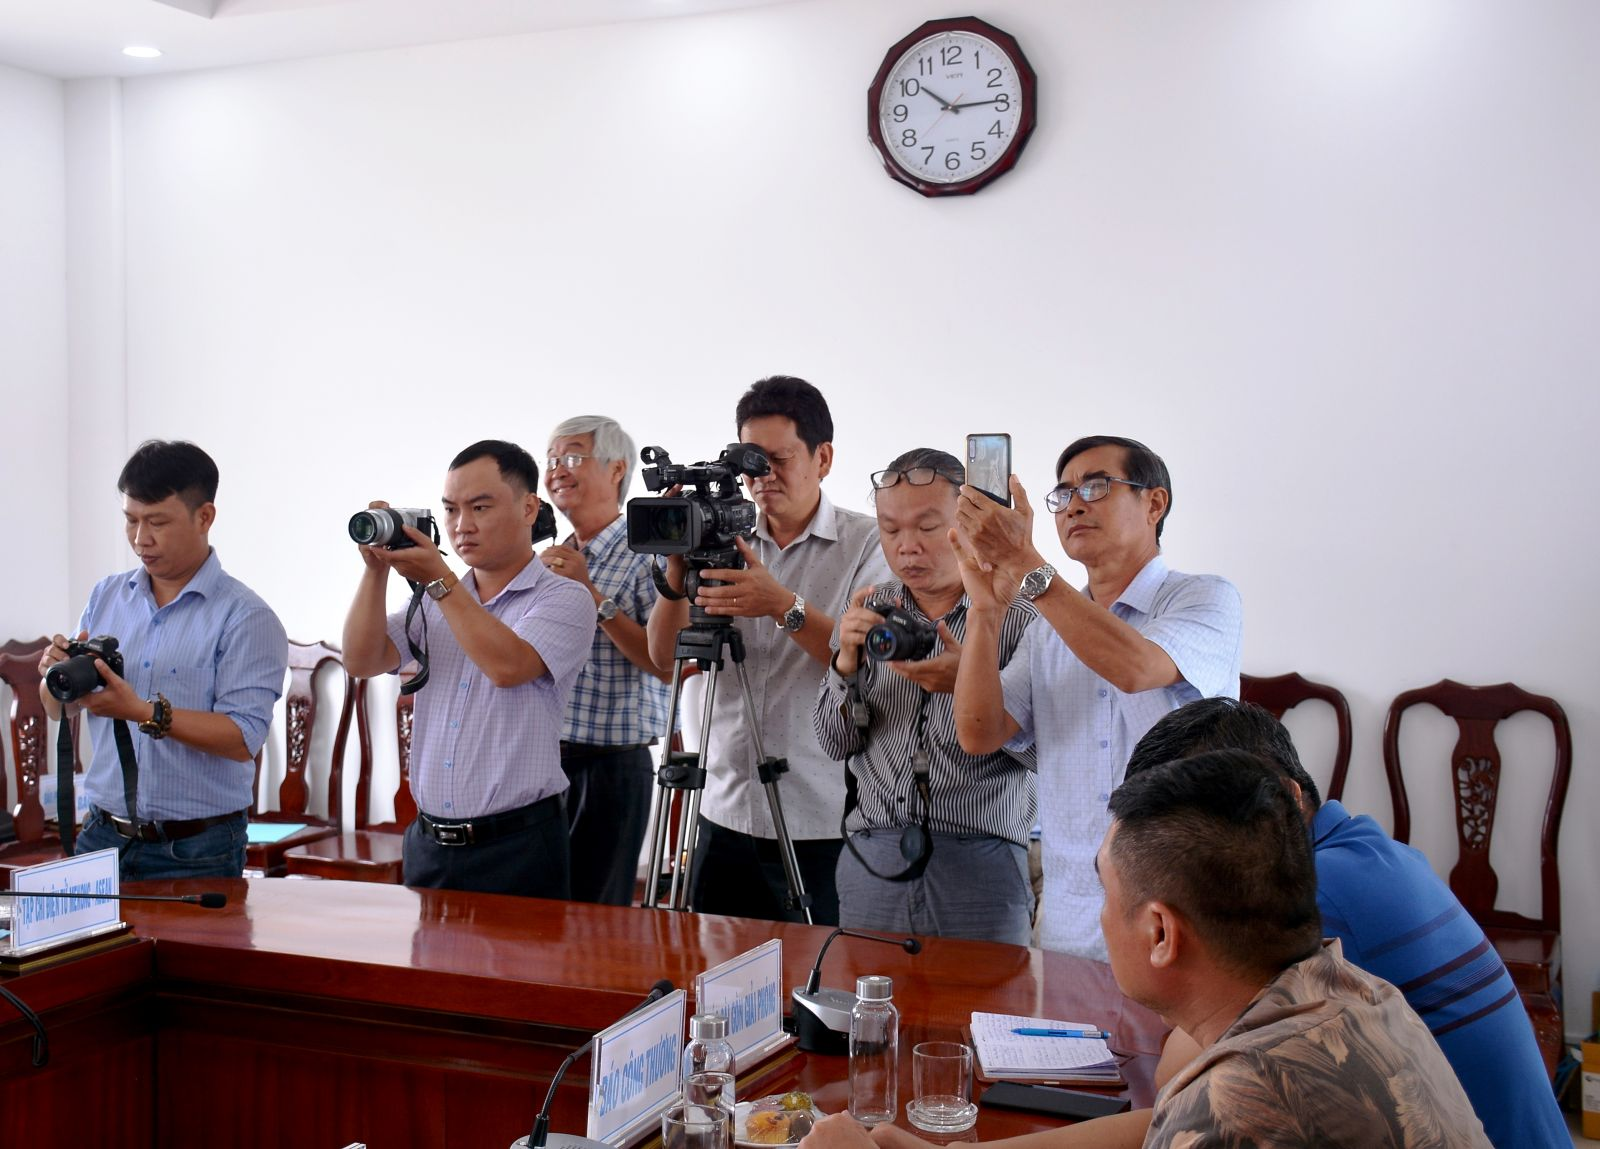 More than 50 central and local news agencies attend the press conference